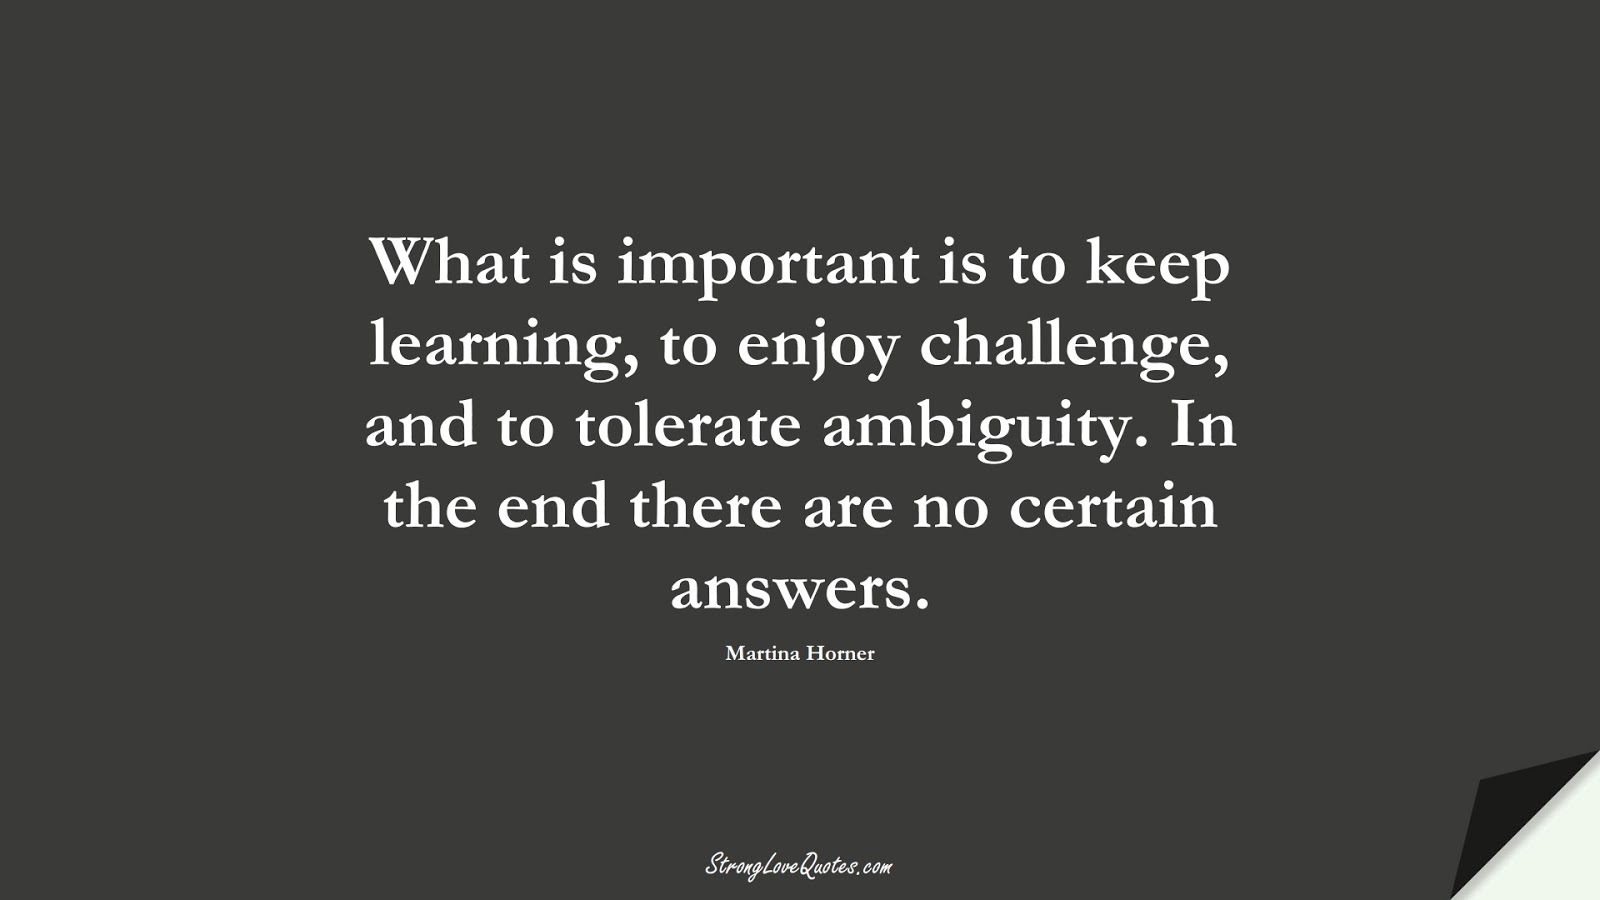 What is important is to keep learning, to enjoy challenge, and to tolerate ambiguity. In the end there are no certain answers. (Martina Horner);  #EducationQuotes